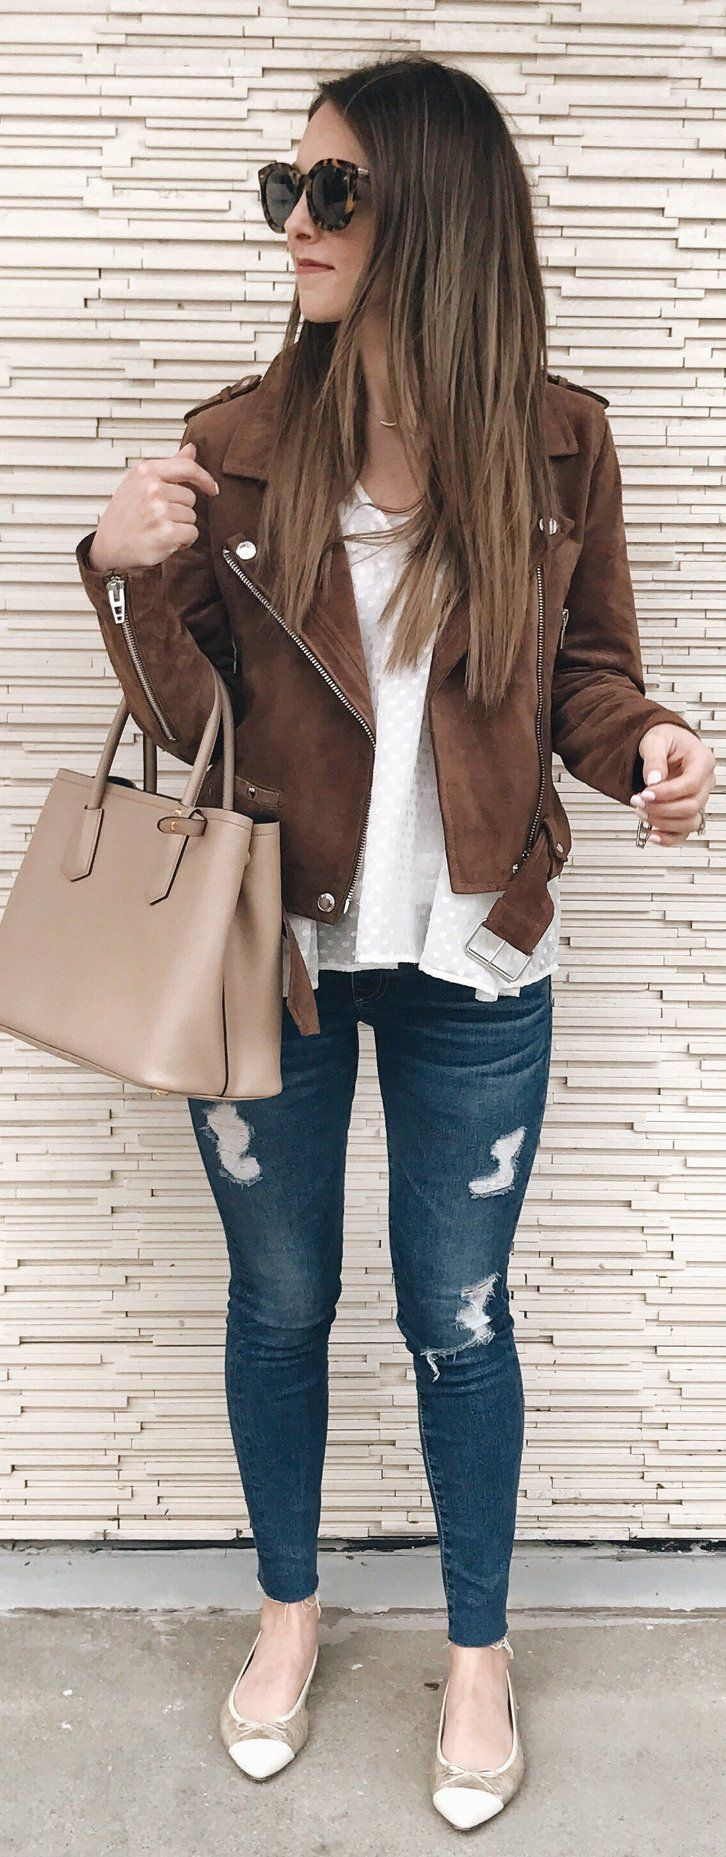 Best 25+ Brown Jacket Outfit Ideas On Pinterest | Tan Jacket Tan Blazer Outfits And Cinema ...